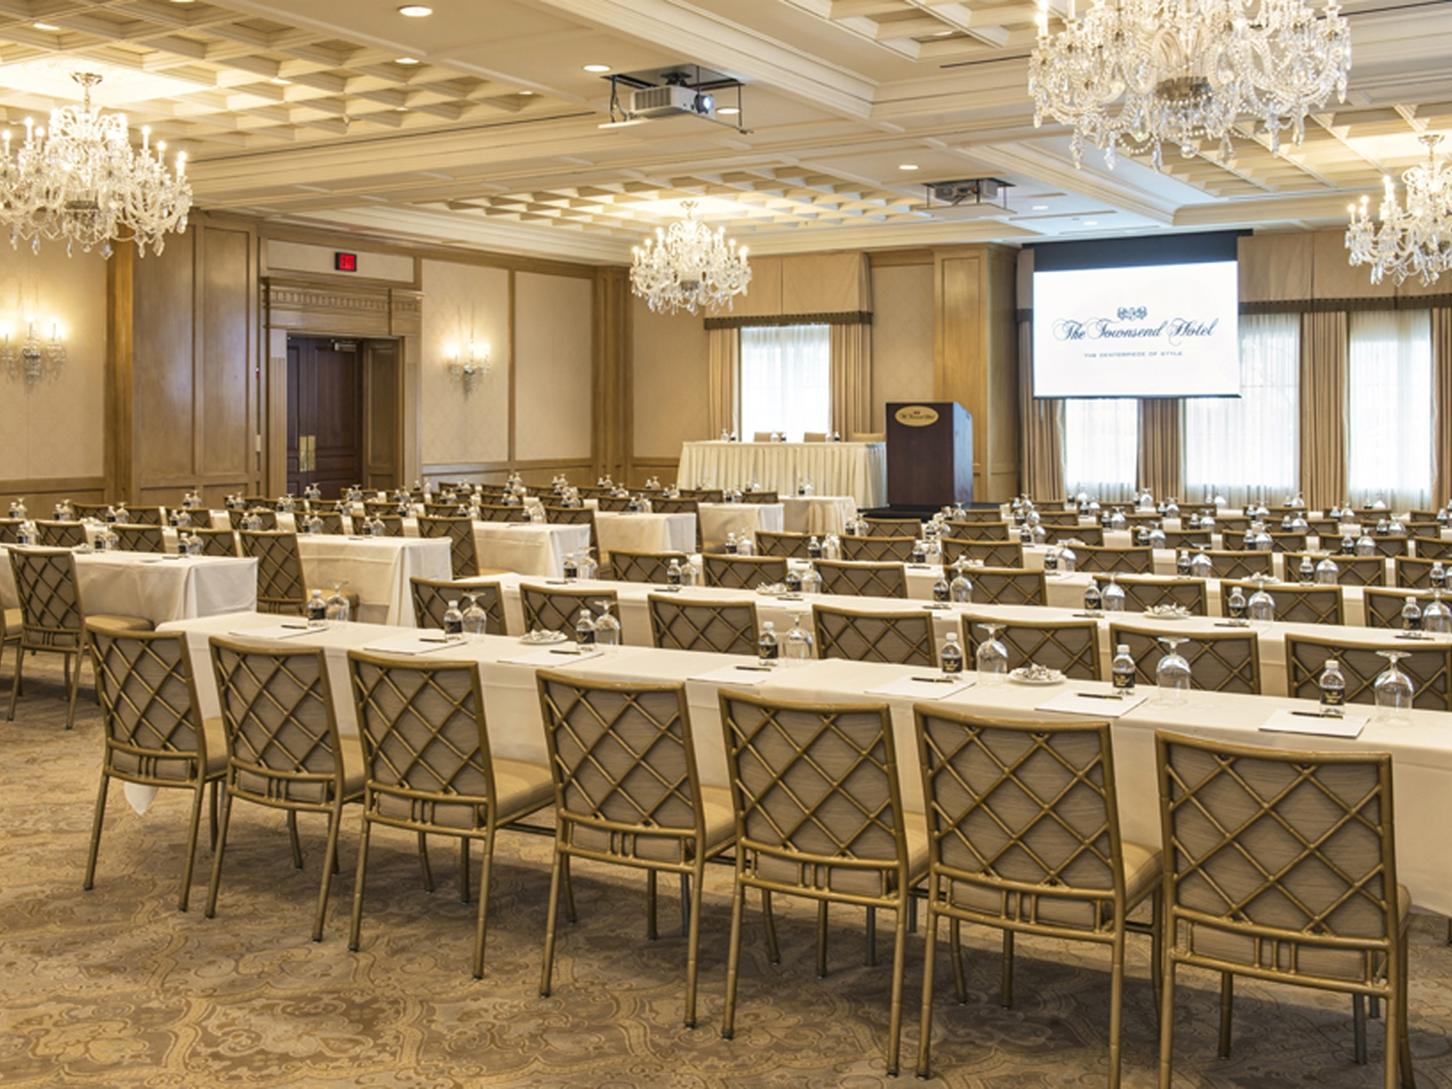 roms of tables and chairs in event room